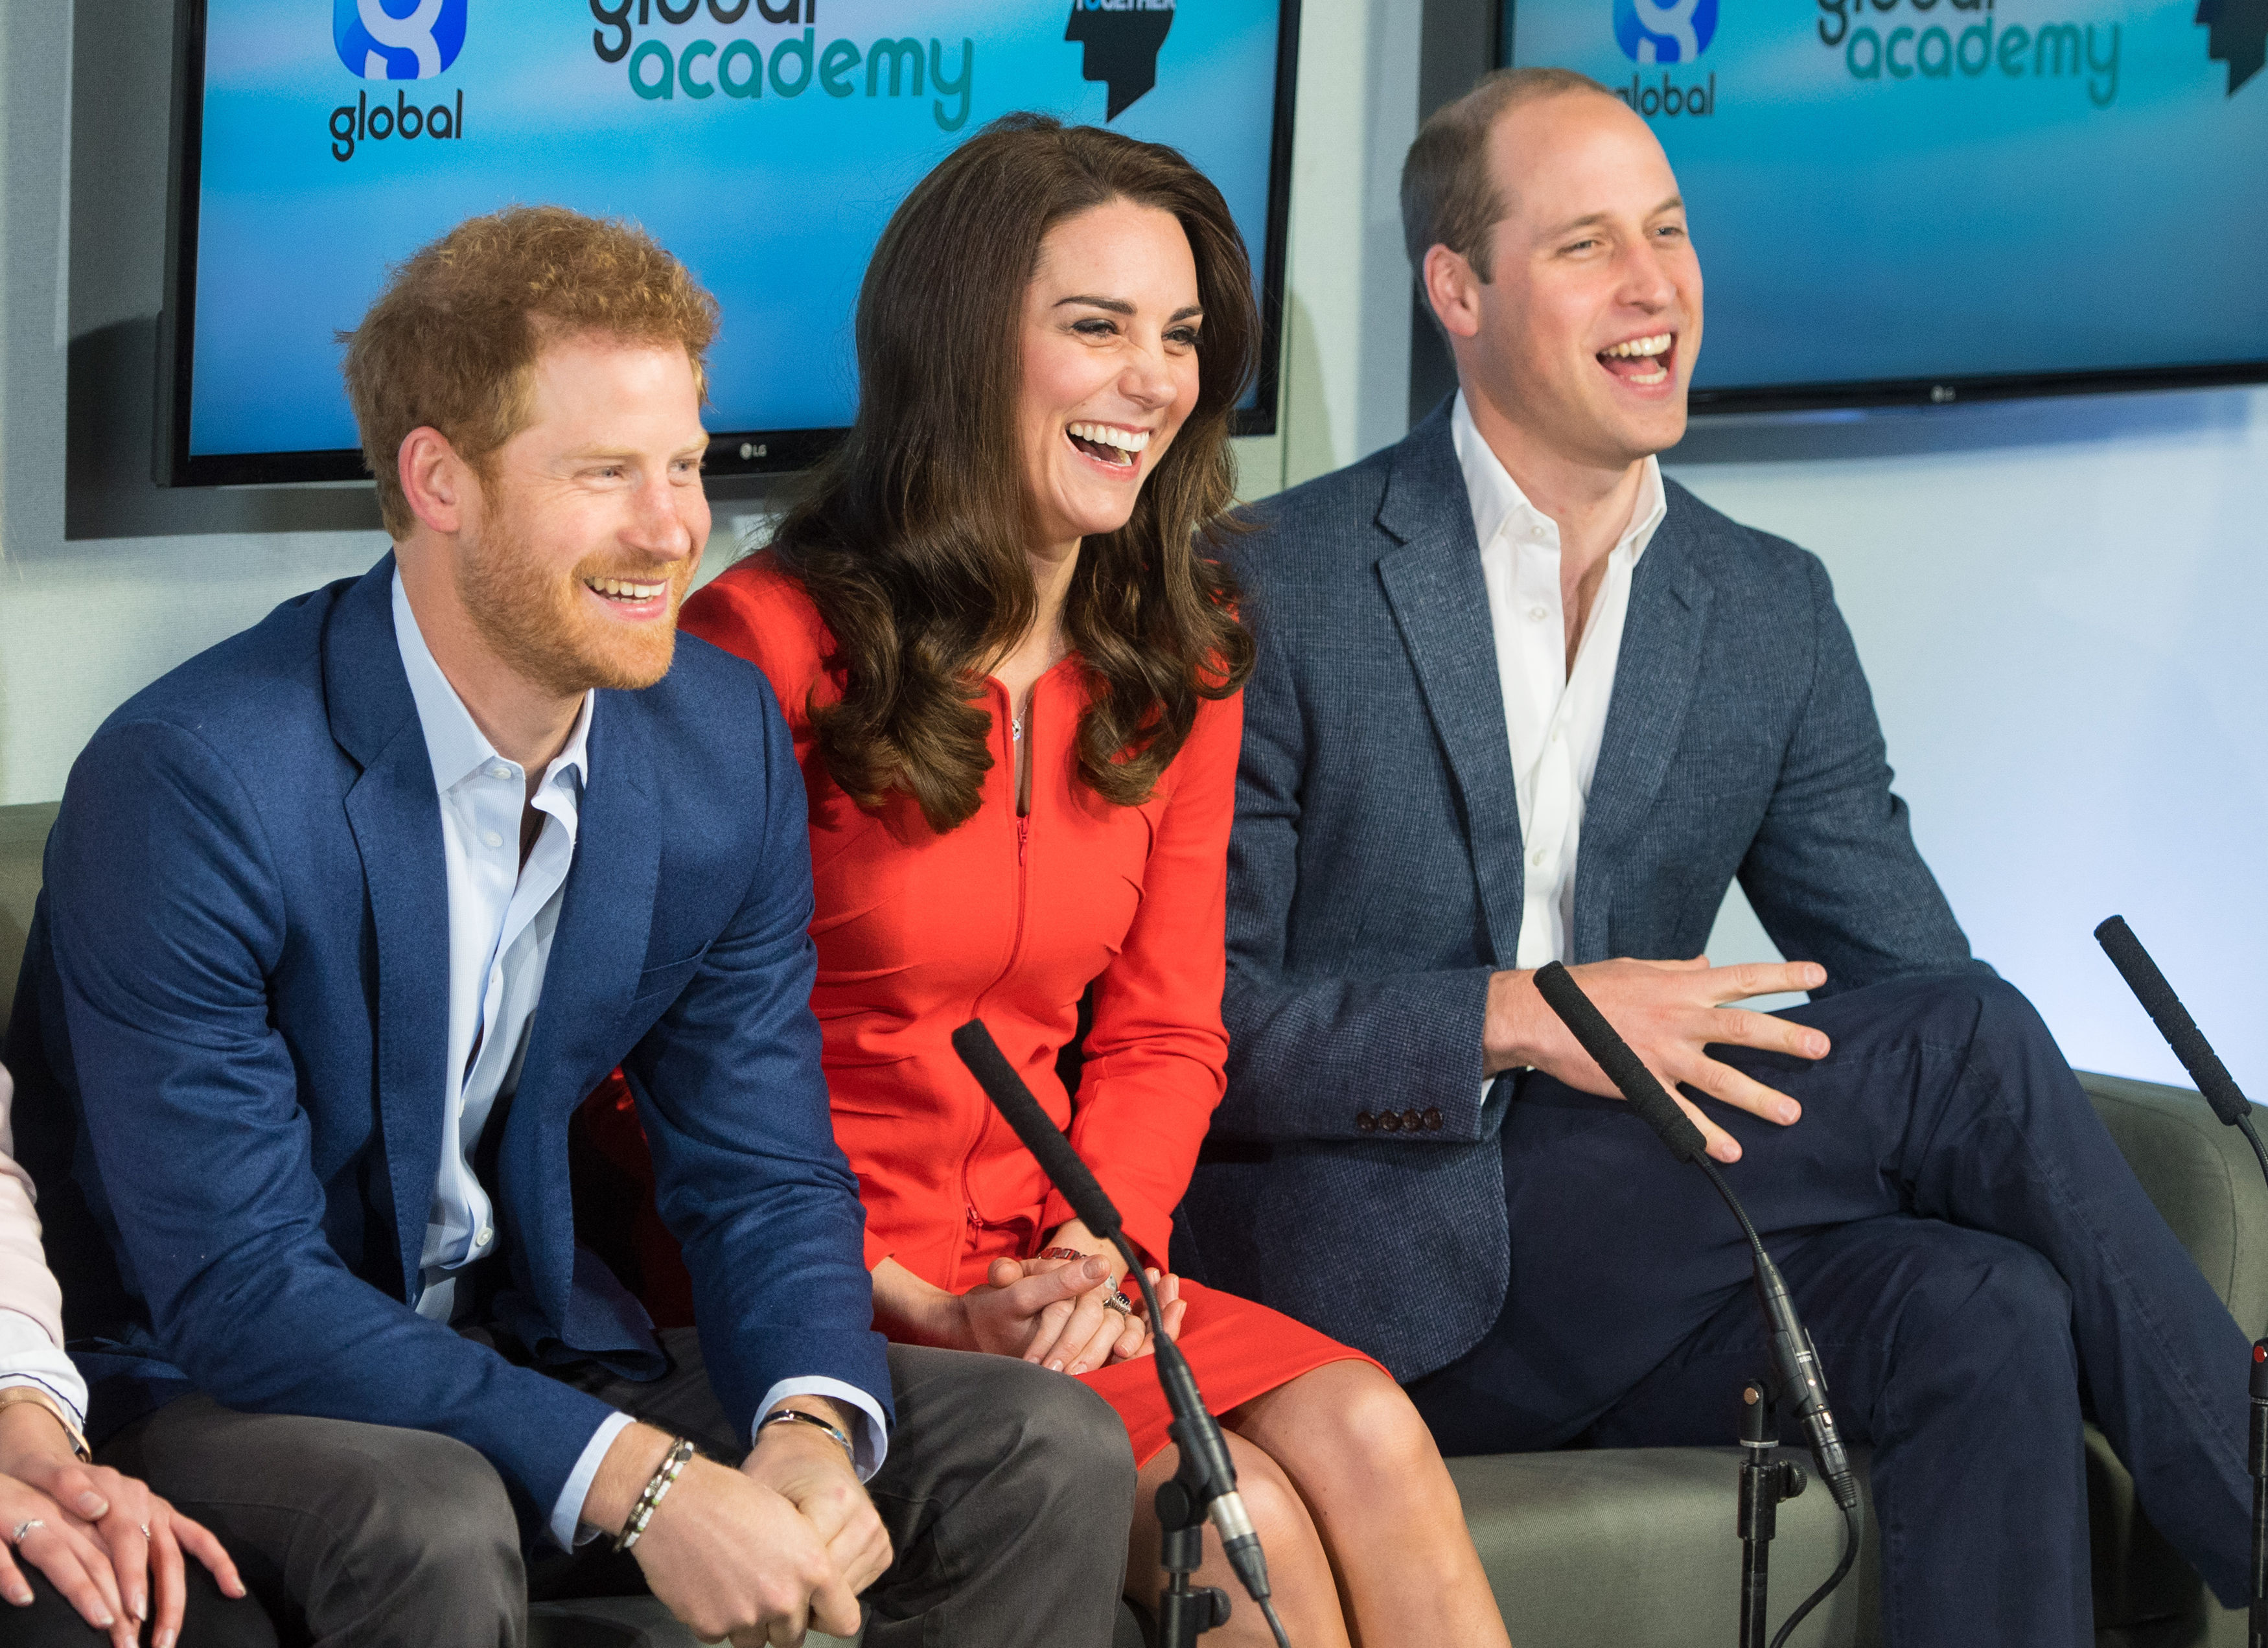 Global Academy royal guests with Prince Harry